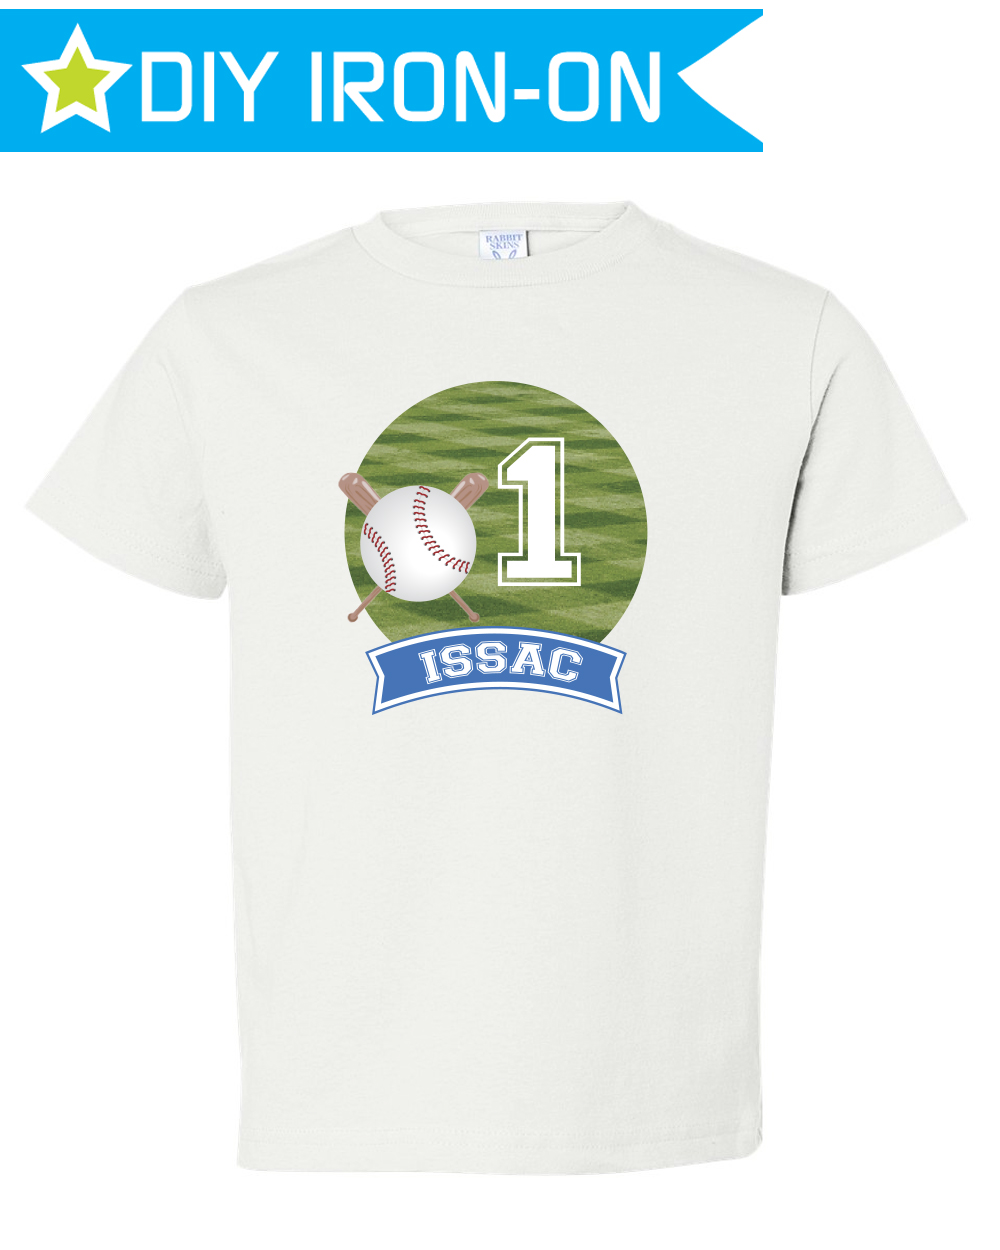 Personalized Baseball Birthday T Shirt Iron On Transfer For Kids